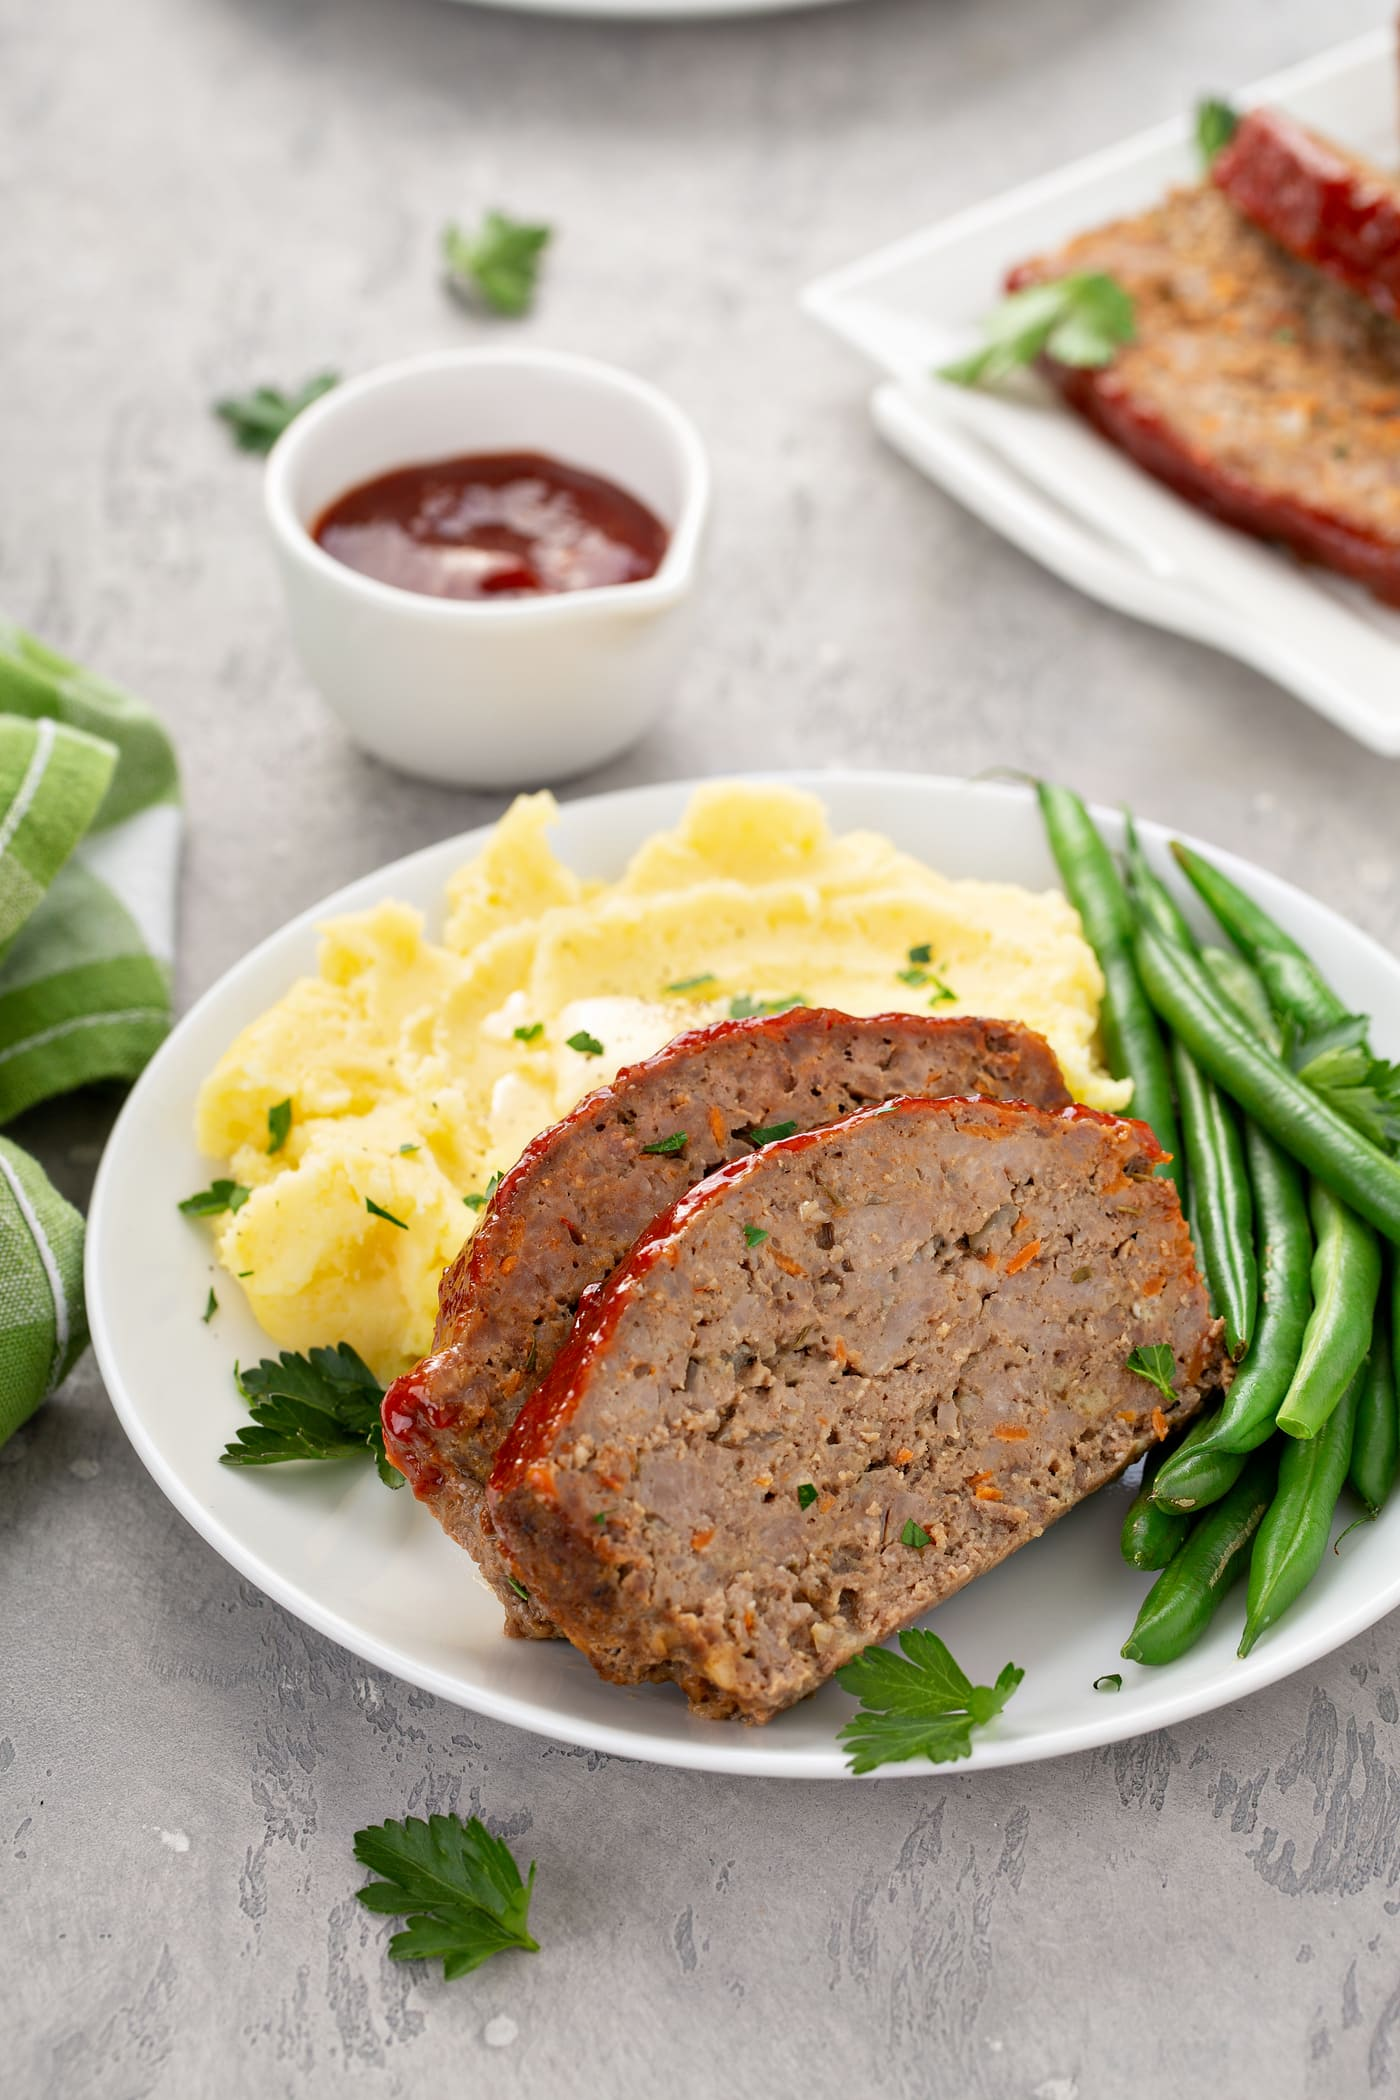 A plate containing two slices of meatloaf, green beans and mashed potatoes. There is a small container of glaze in the background.